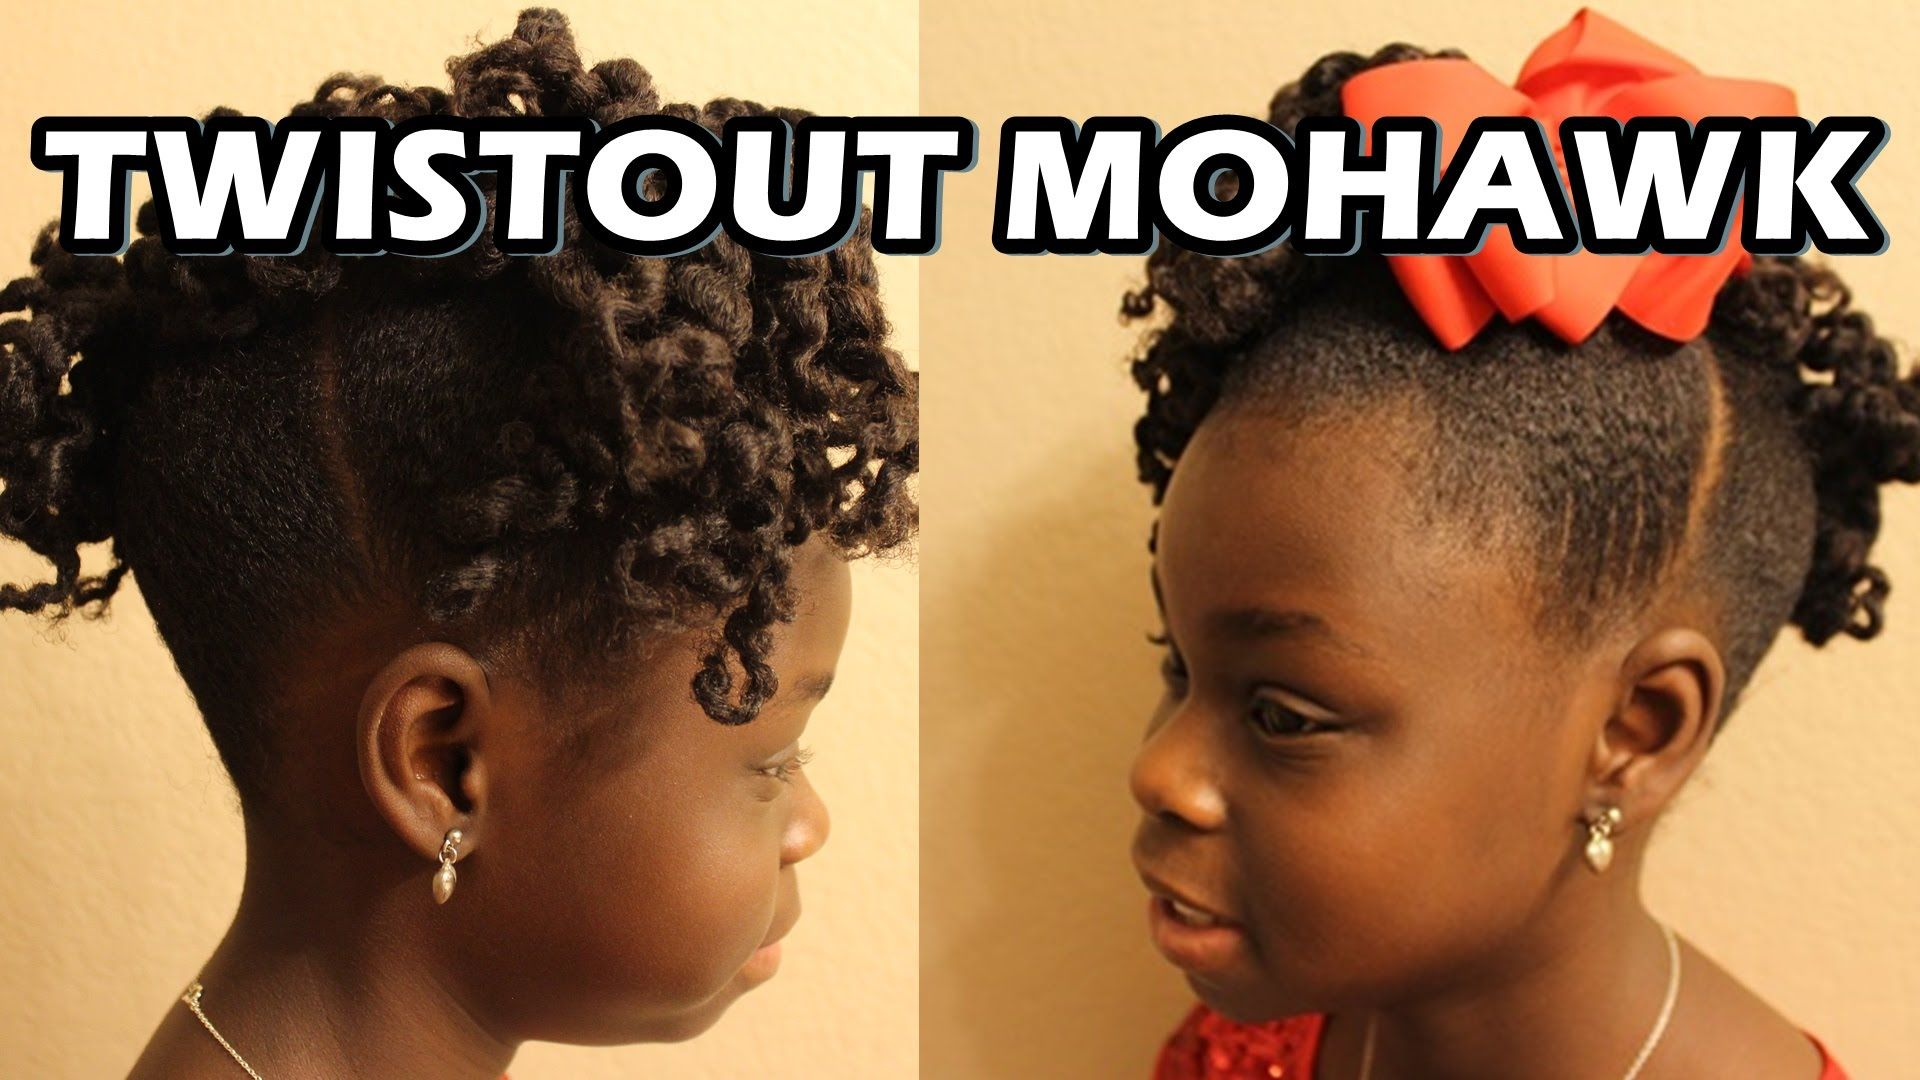 Twistout mohawk natural hair auniyah lebree pinterest mohawks